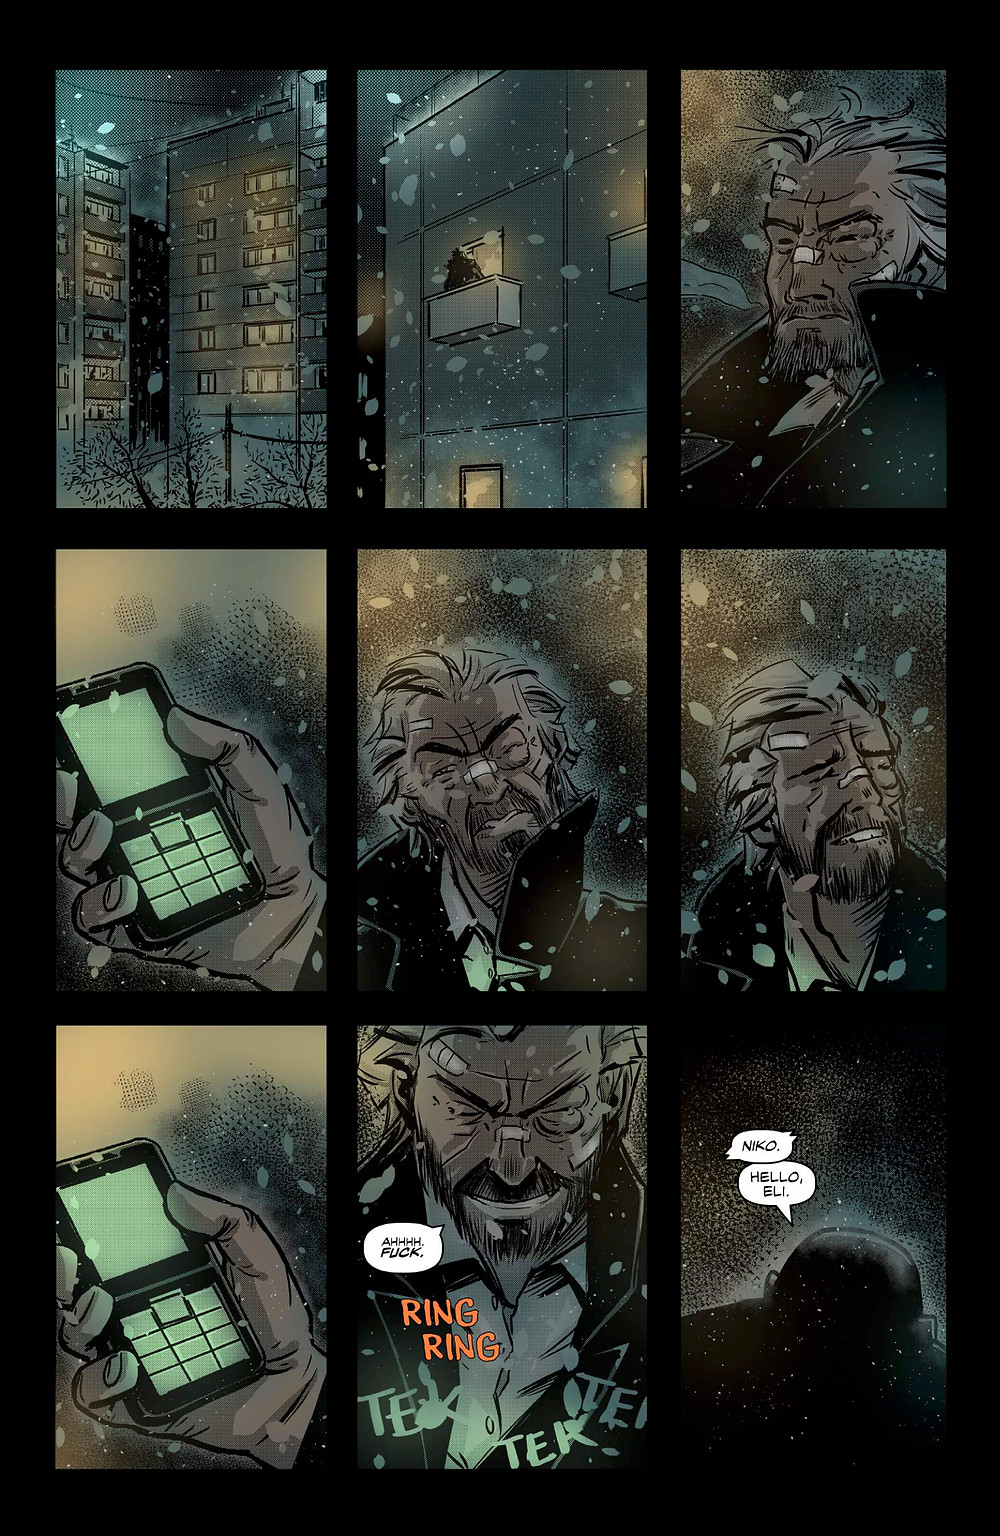 Red Winter, issue #1, page 8, Scout Comics, Gordon/Munoz